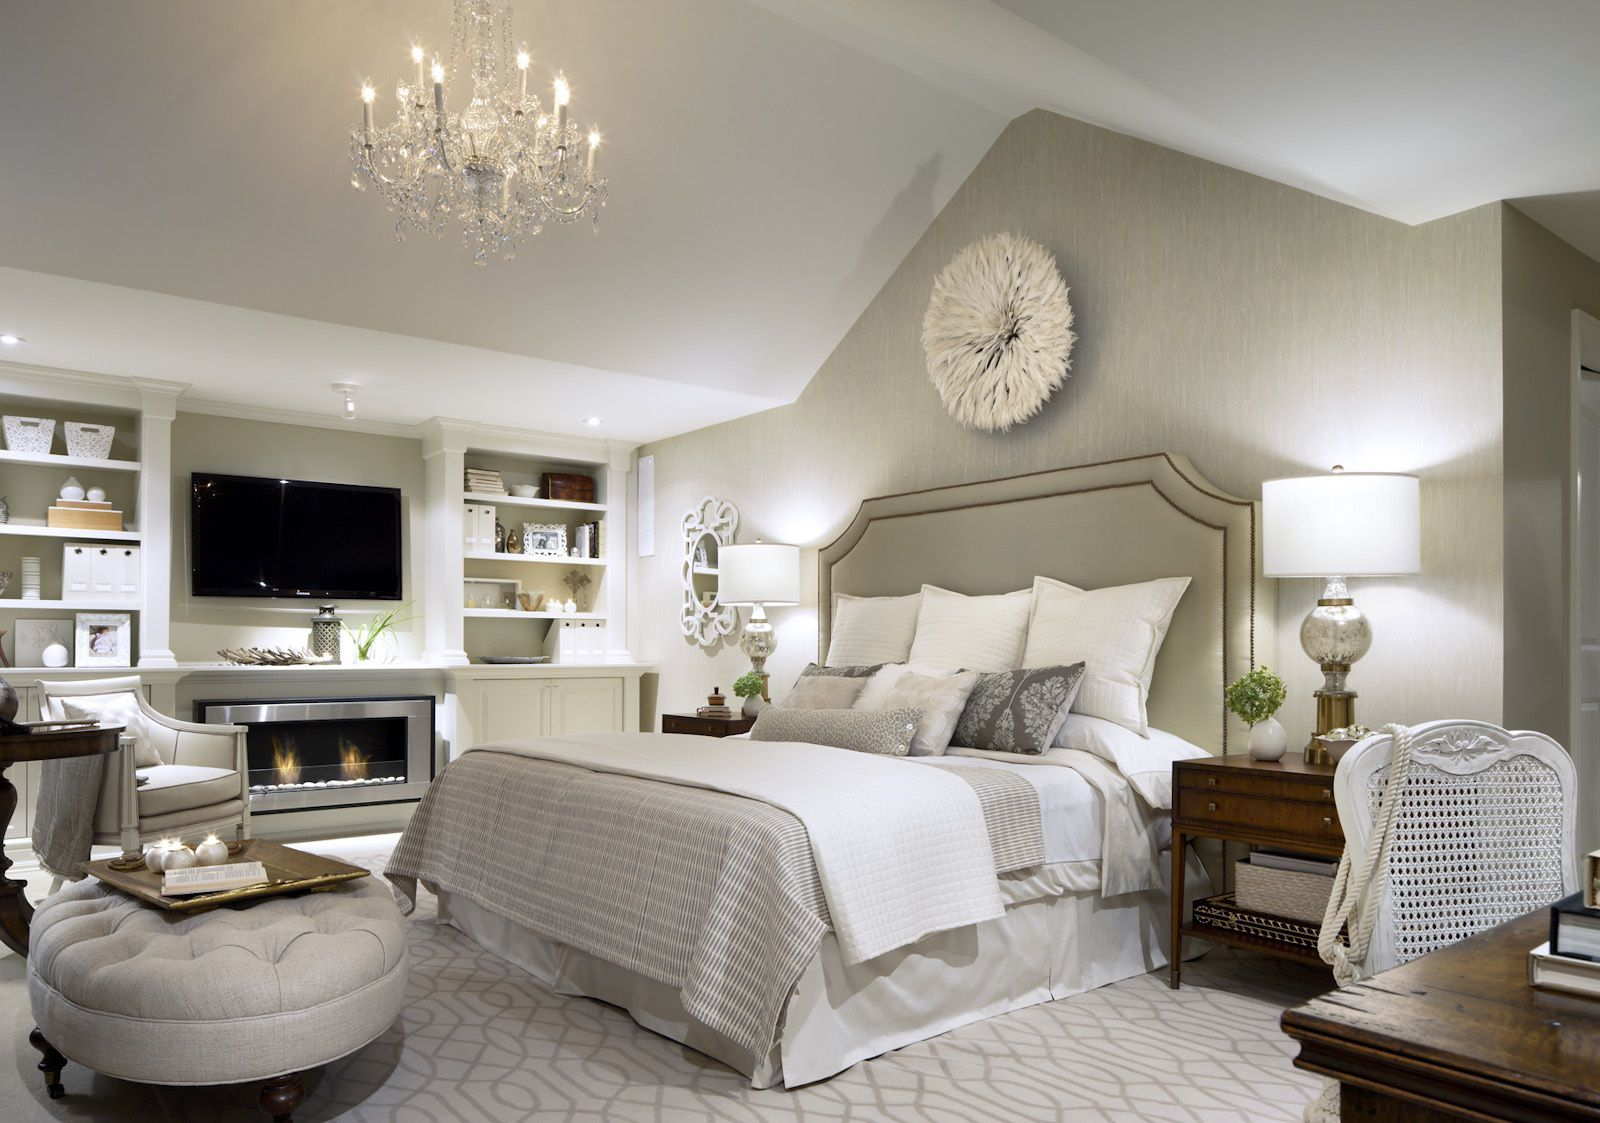 Featured Image of Luxury Fabric Bedroom With Classic Look